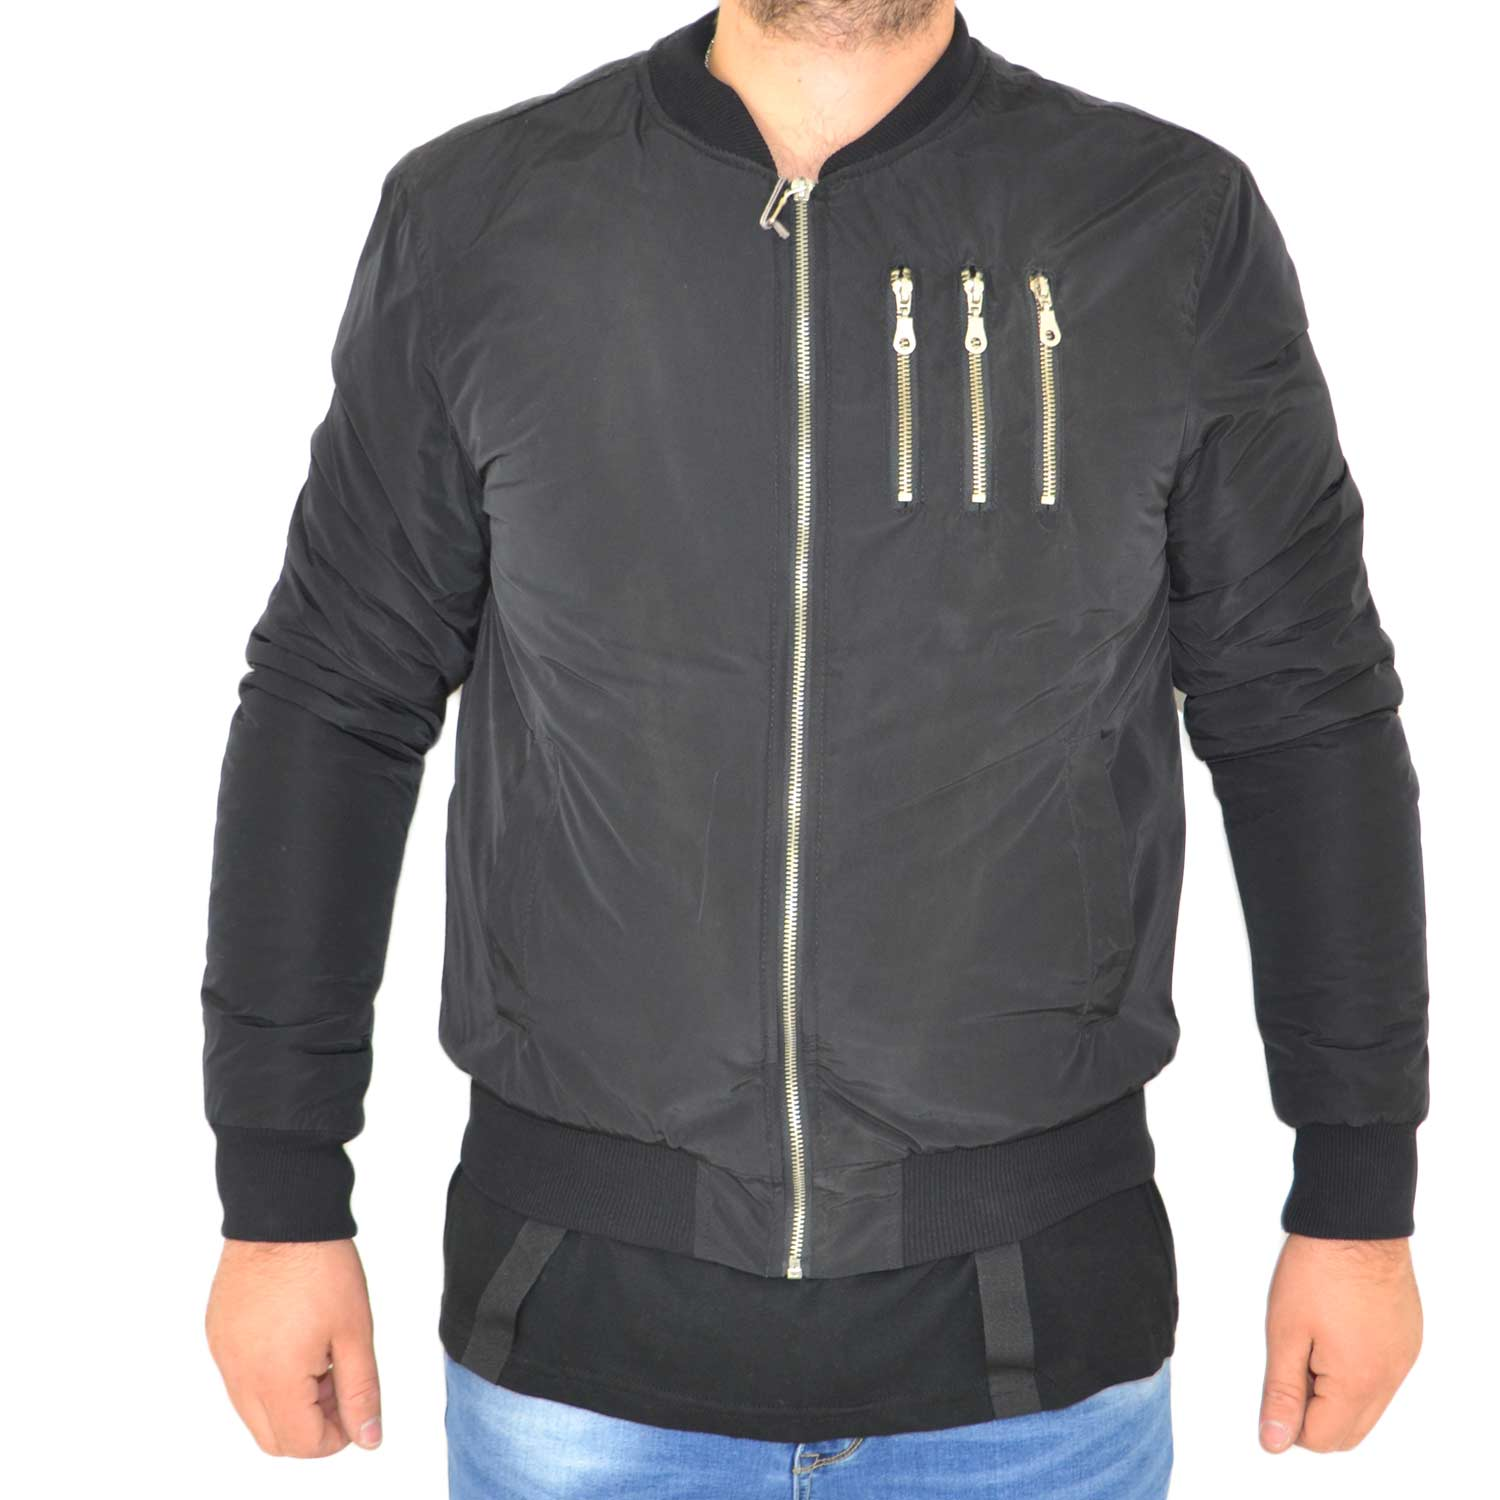 Giubbotto art B093 Acy 3 Lampo nero impermeabile made in italy zip moda .